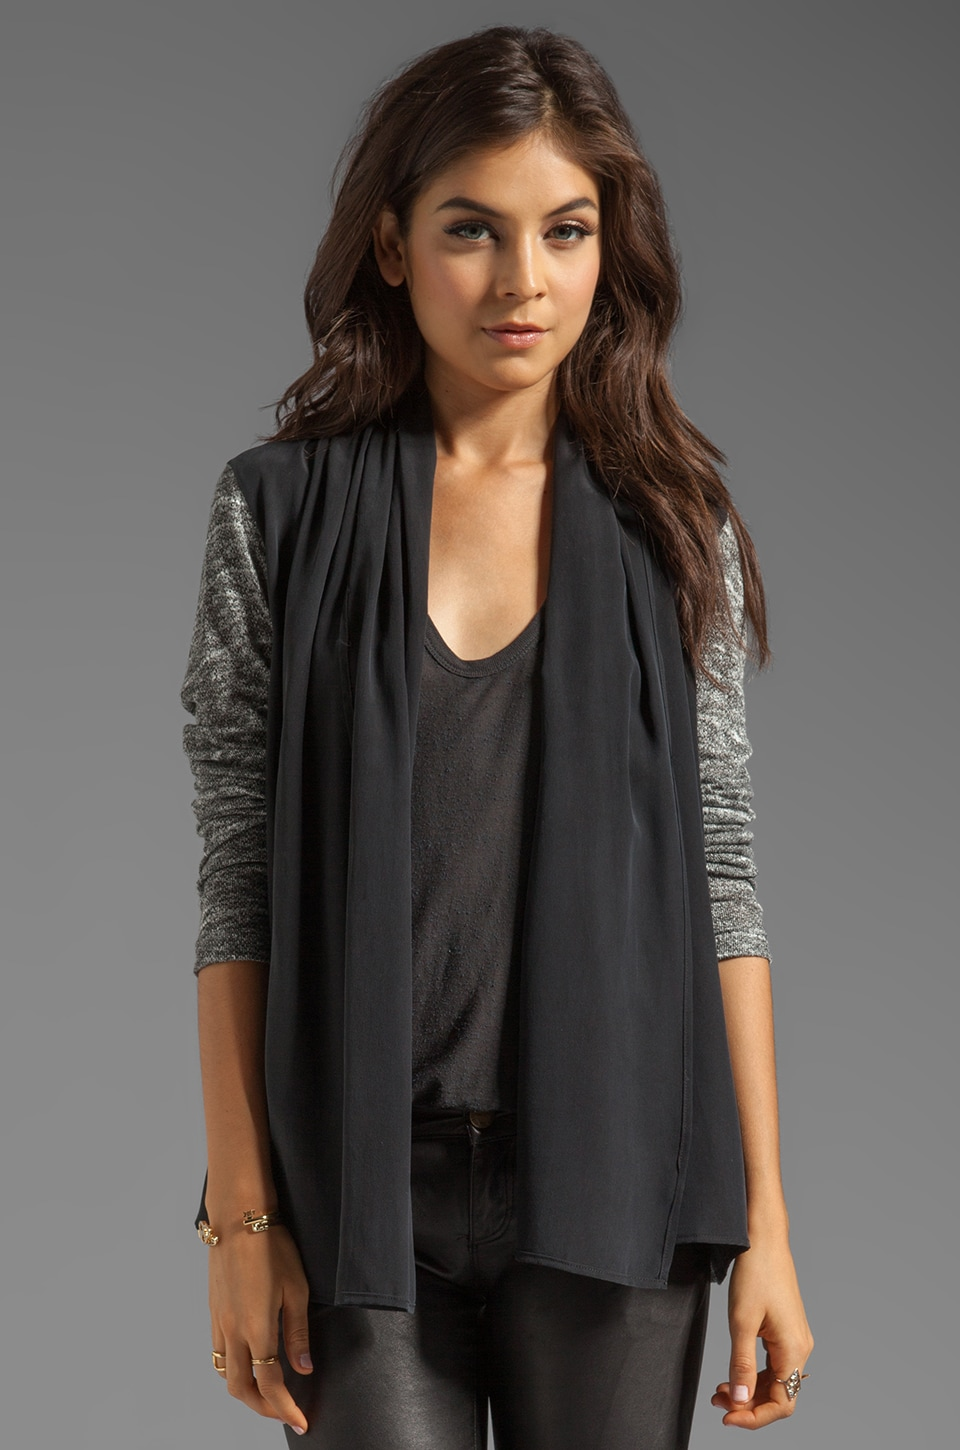 SJOBECK Rosenthal Cardi in Salt & Pepper